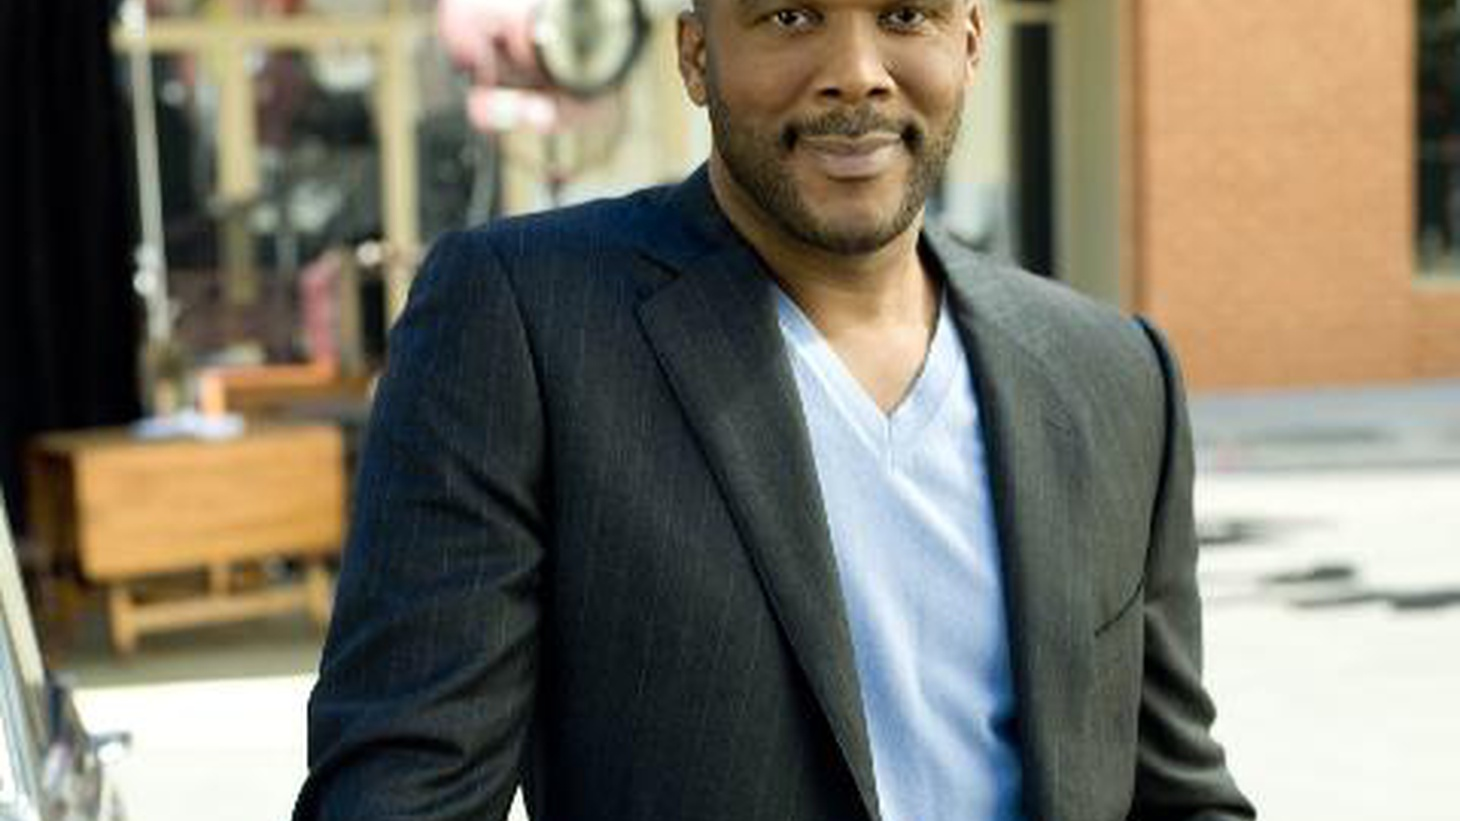 """Like his hugely successful films, Tyler Perry's Guest DJ set is a tribute to his Southern roots and explores the inner workings of relationships with insightful humor. The writer, director and producer dedicates two of his five song picks to his mother, who passed away last year, and explains the major role music plays in his writing process. His latest film is """"Why Did I Get Married Too."""""""